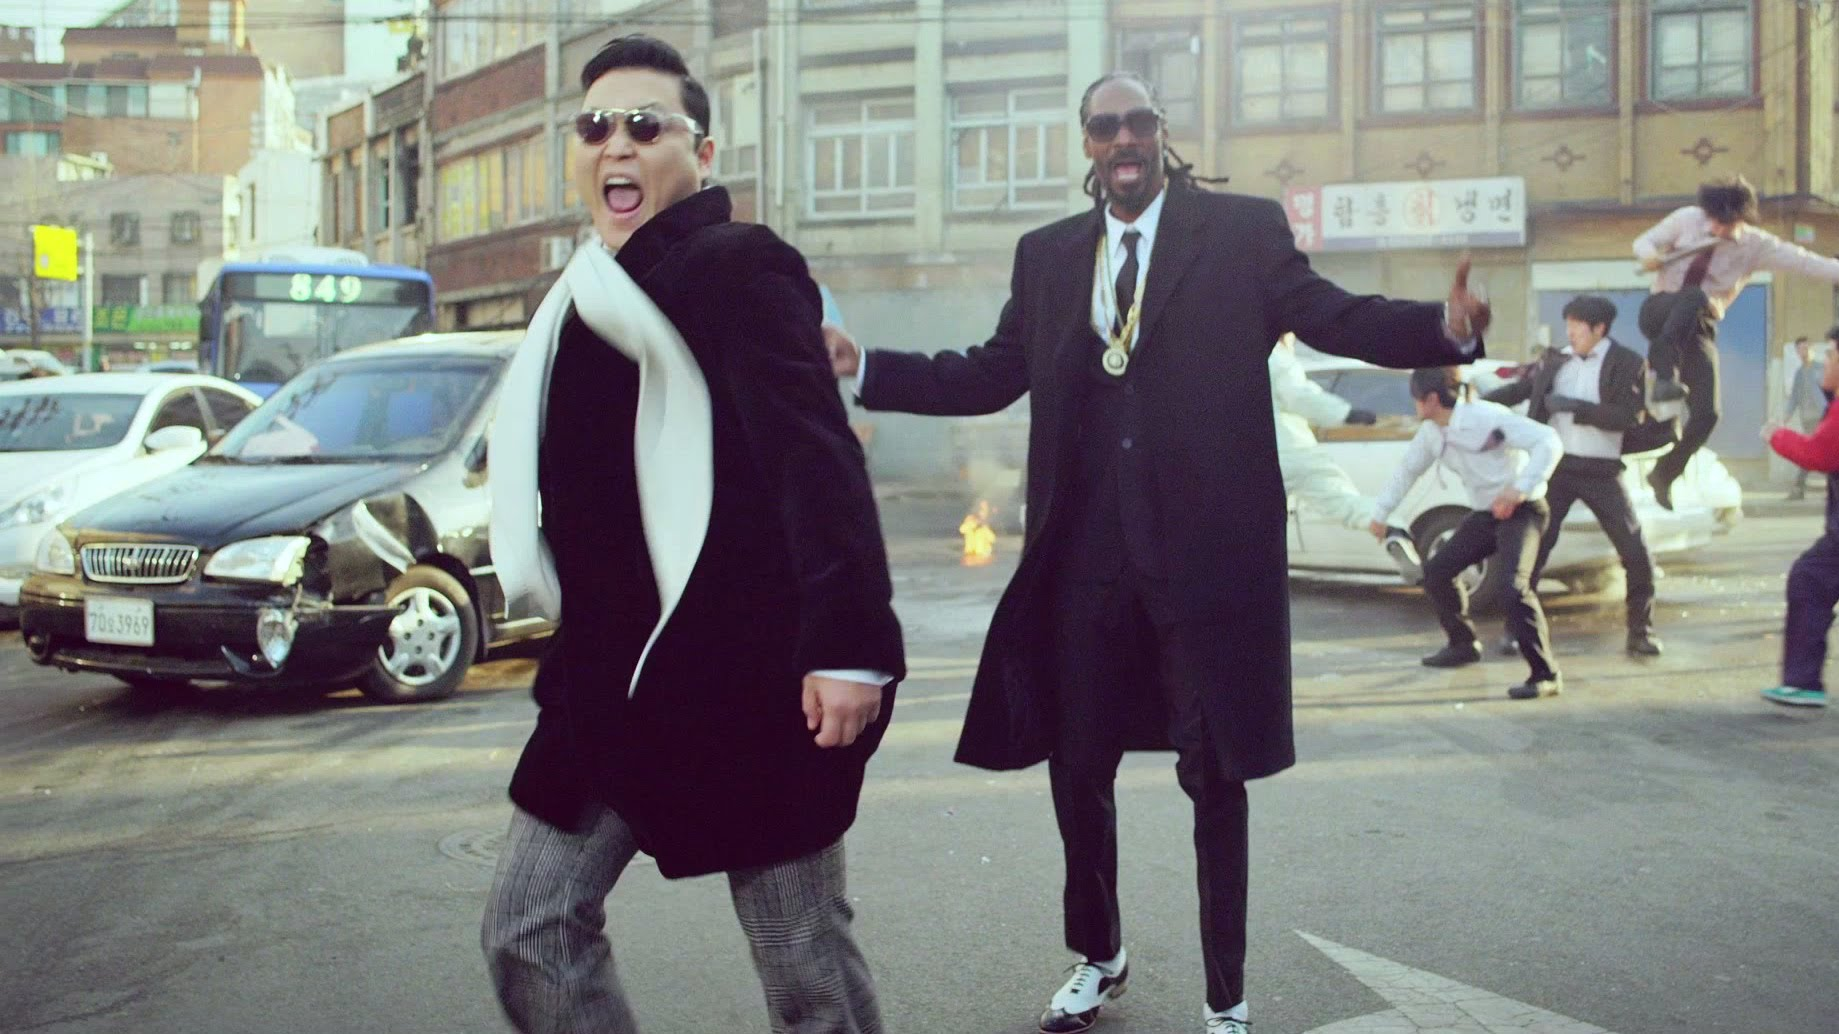 VIDEO: Kocaknya PSY di Video Klip Hangover